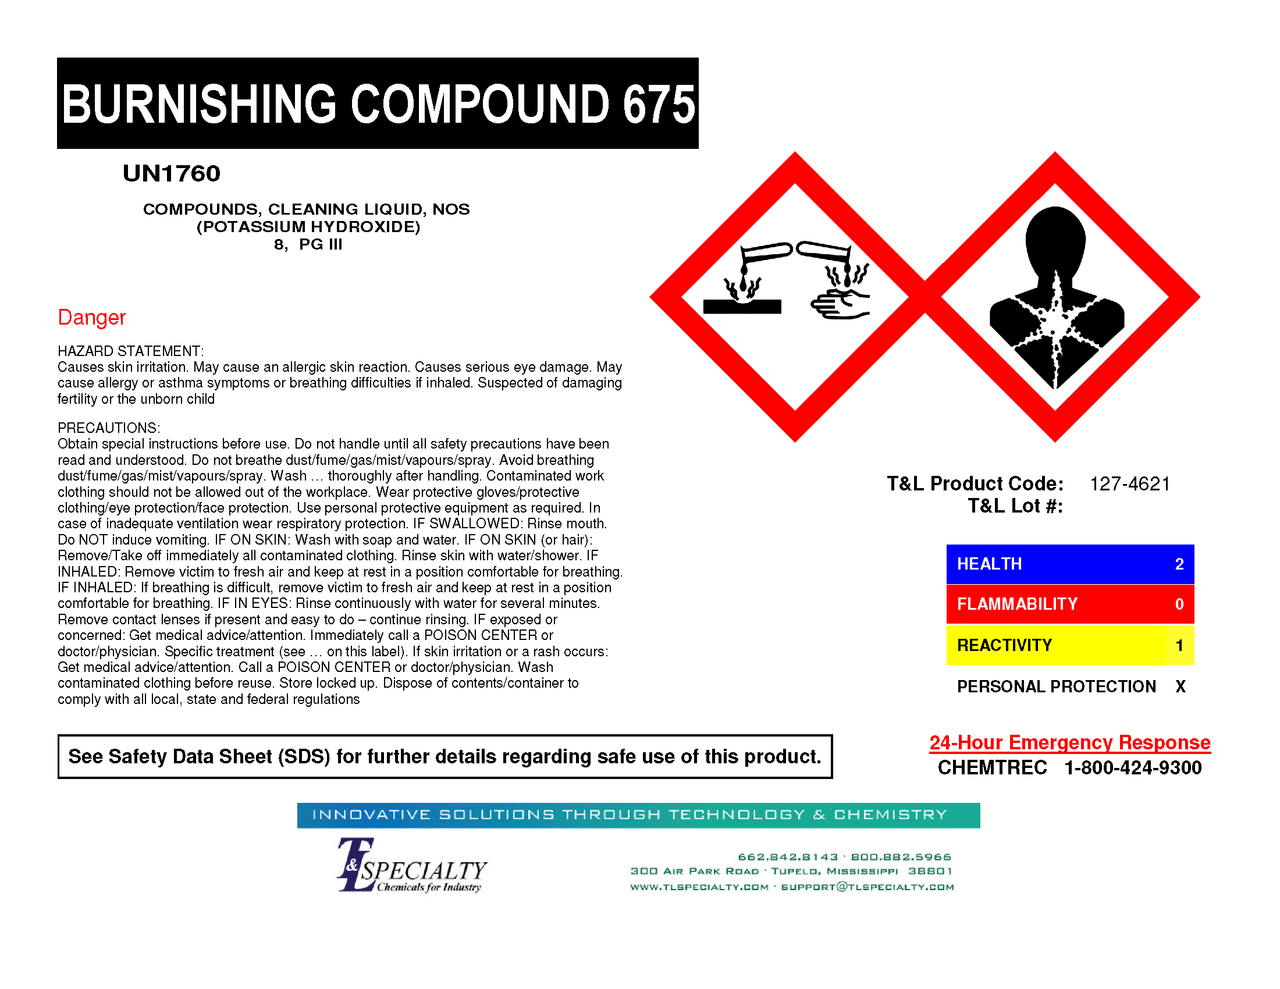 Burnishing Compound 675